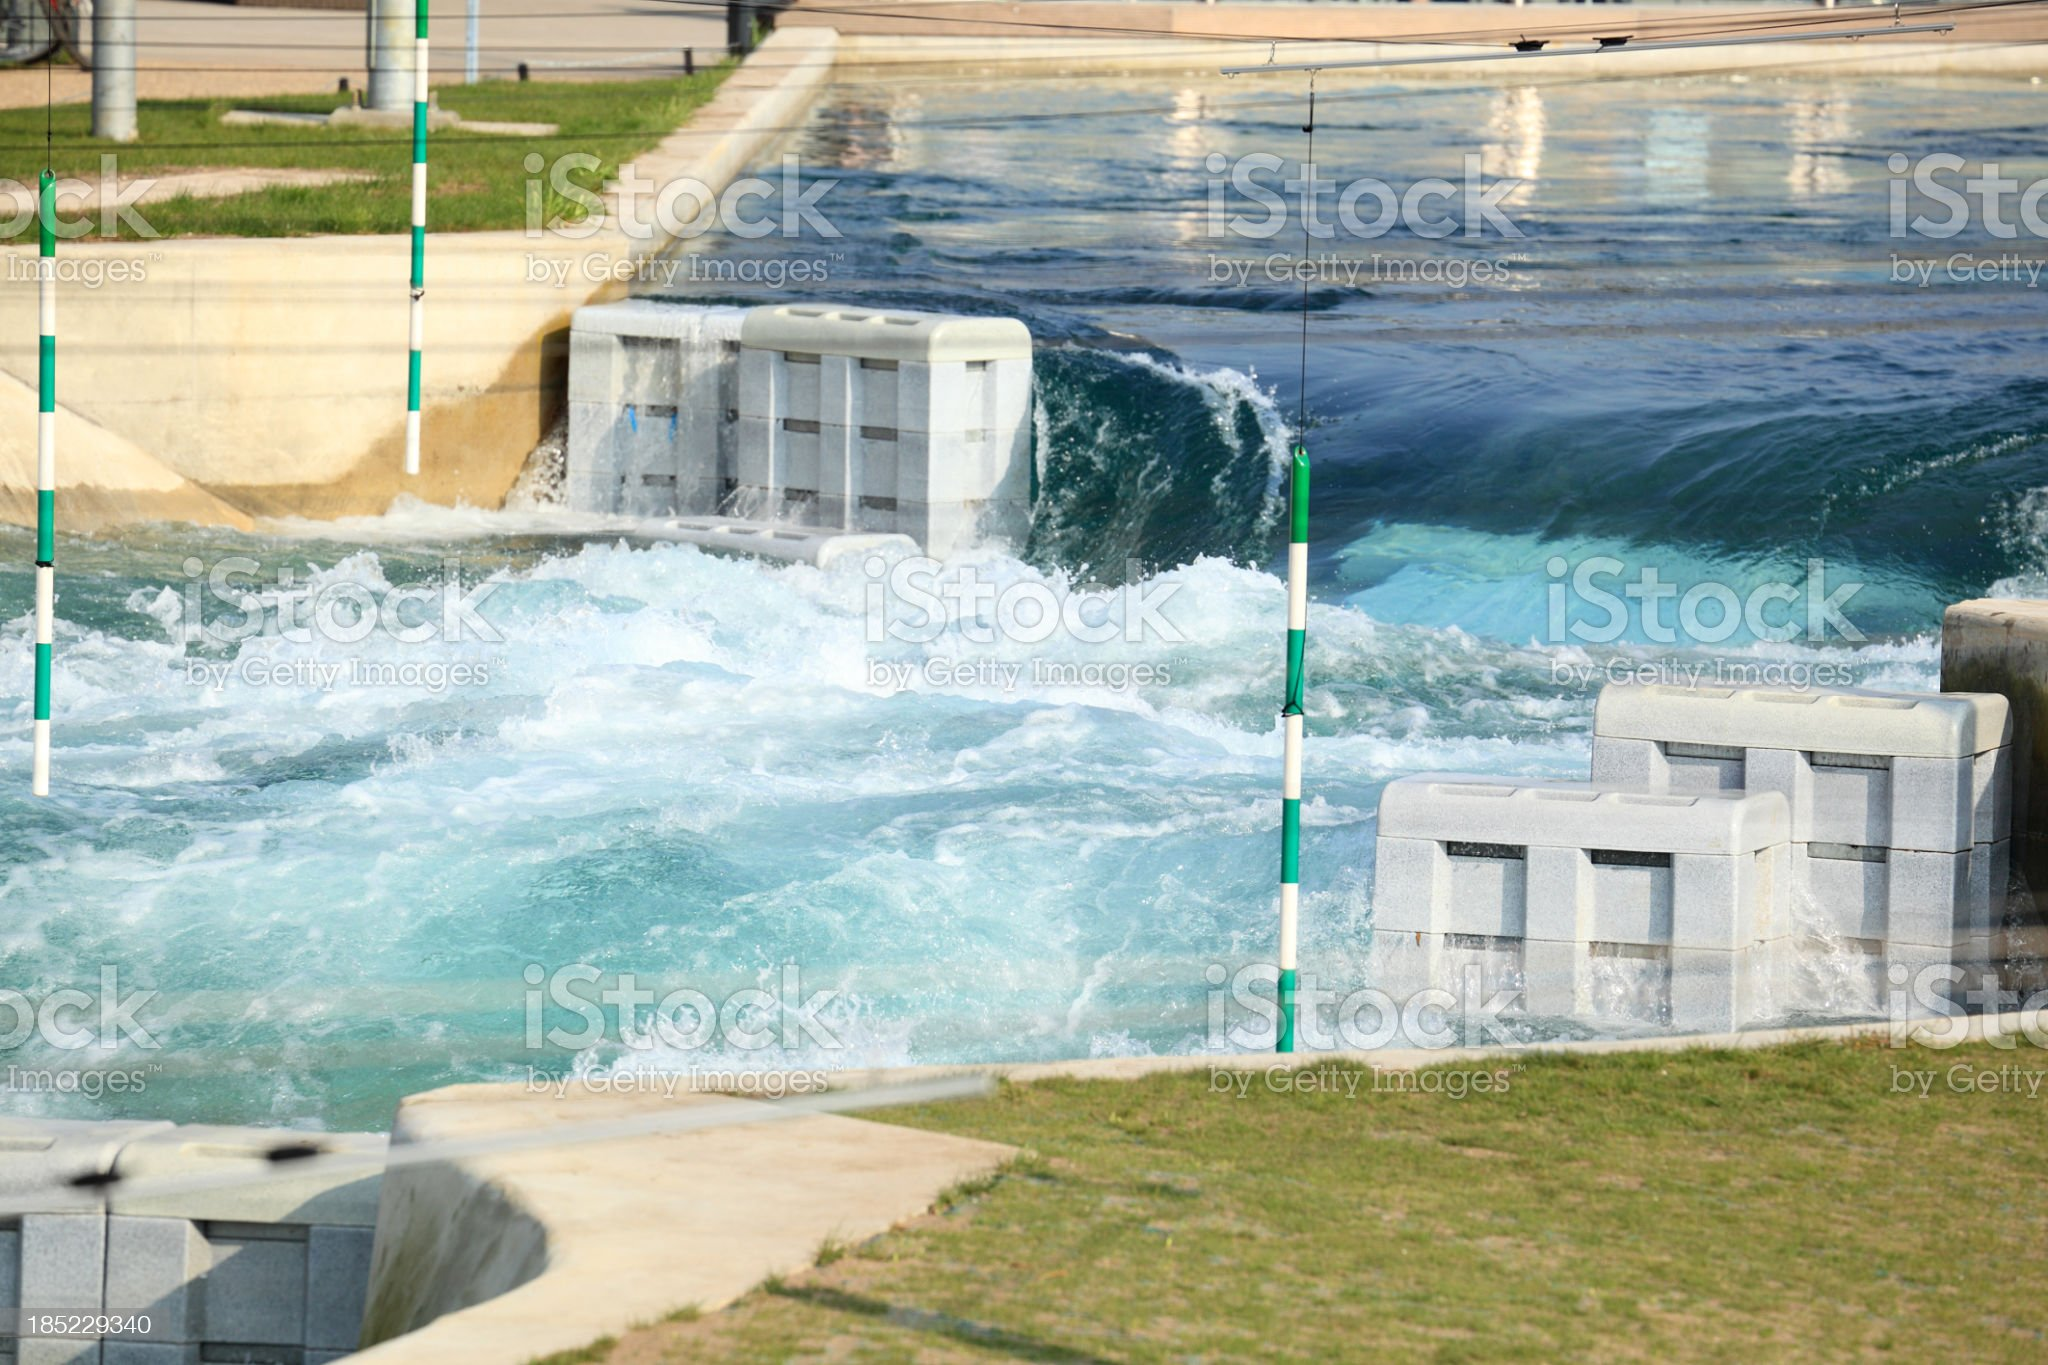 feeder pool waterfall water rafting course showing gate marker royalty-free stock photo